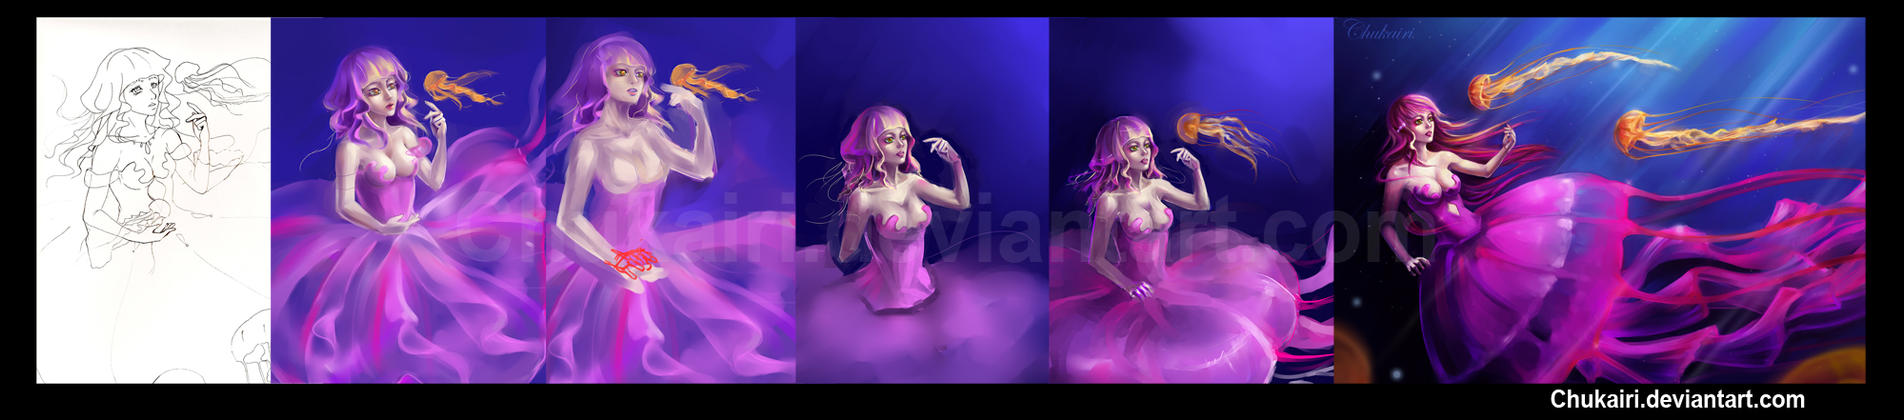 Progress of Jellyfish Girls by Chukairi